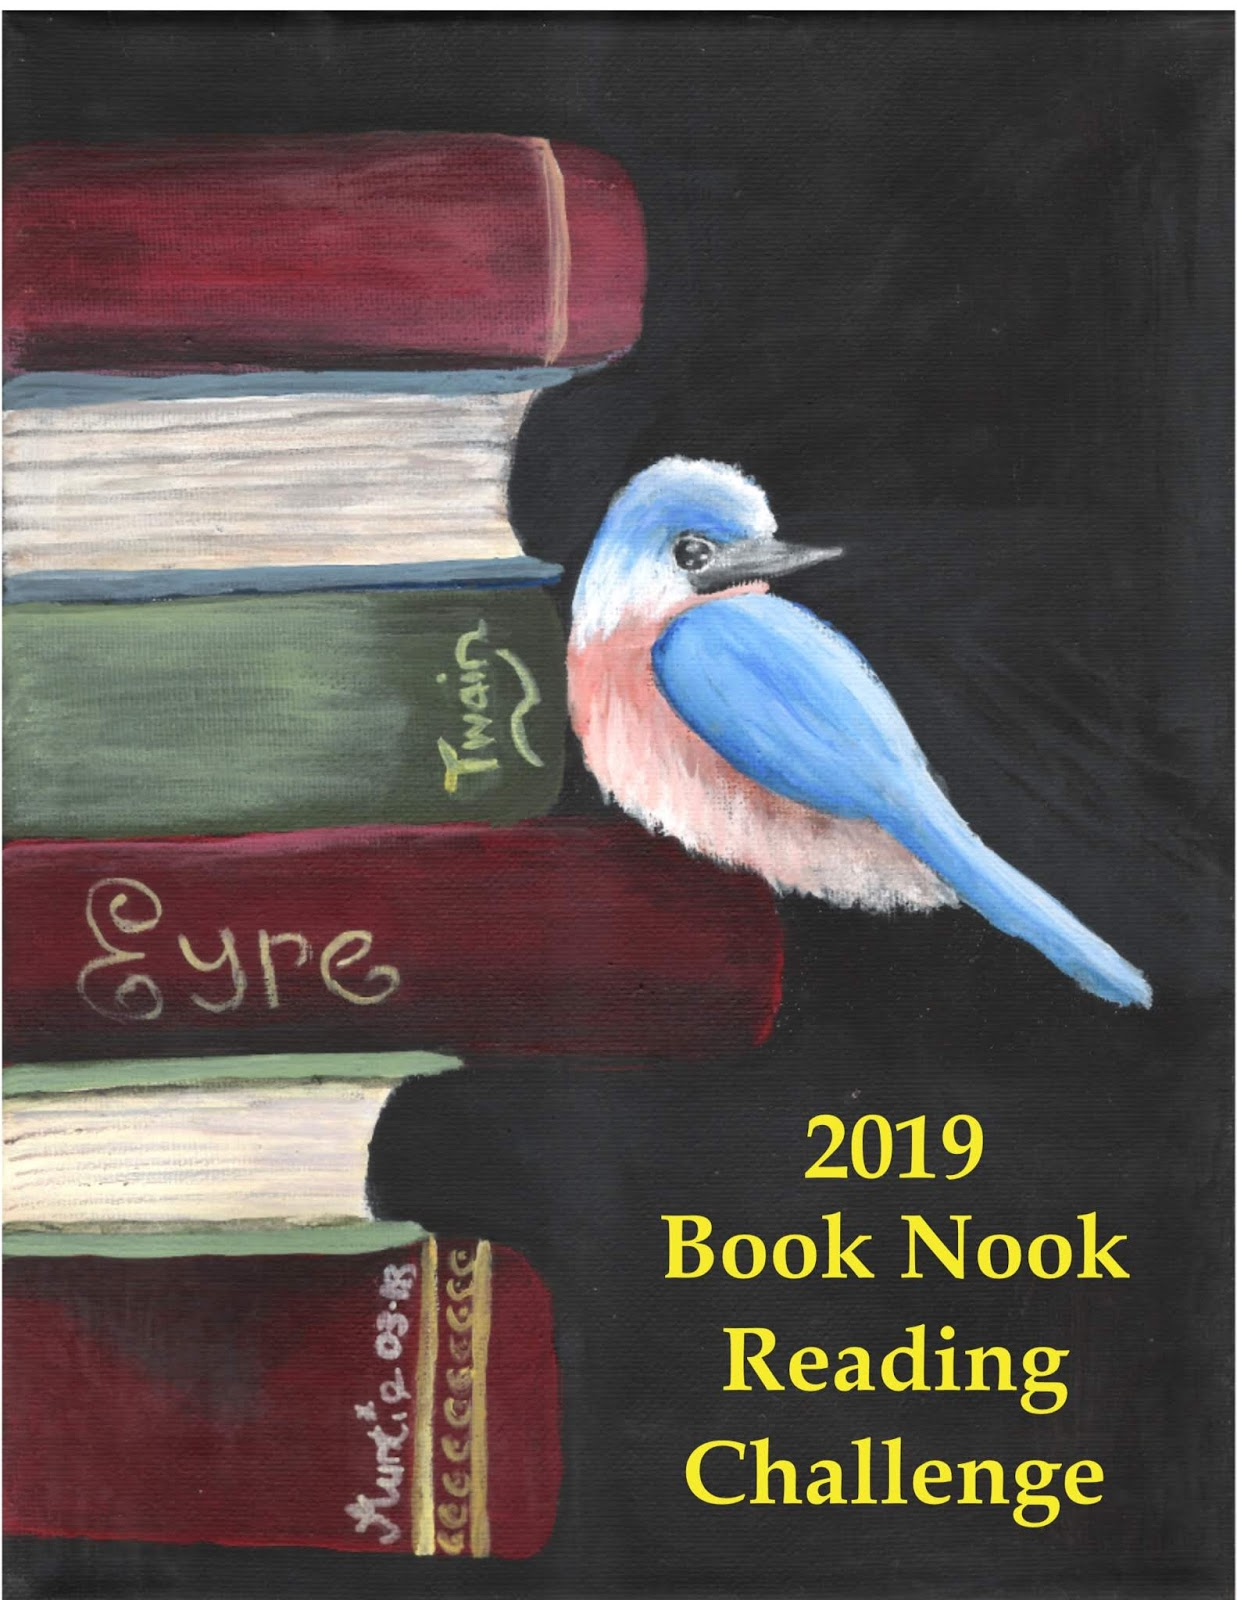 2019 Book Nook Reading Challenge